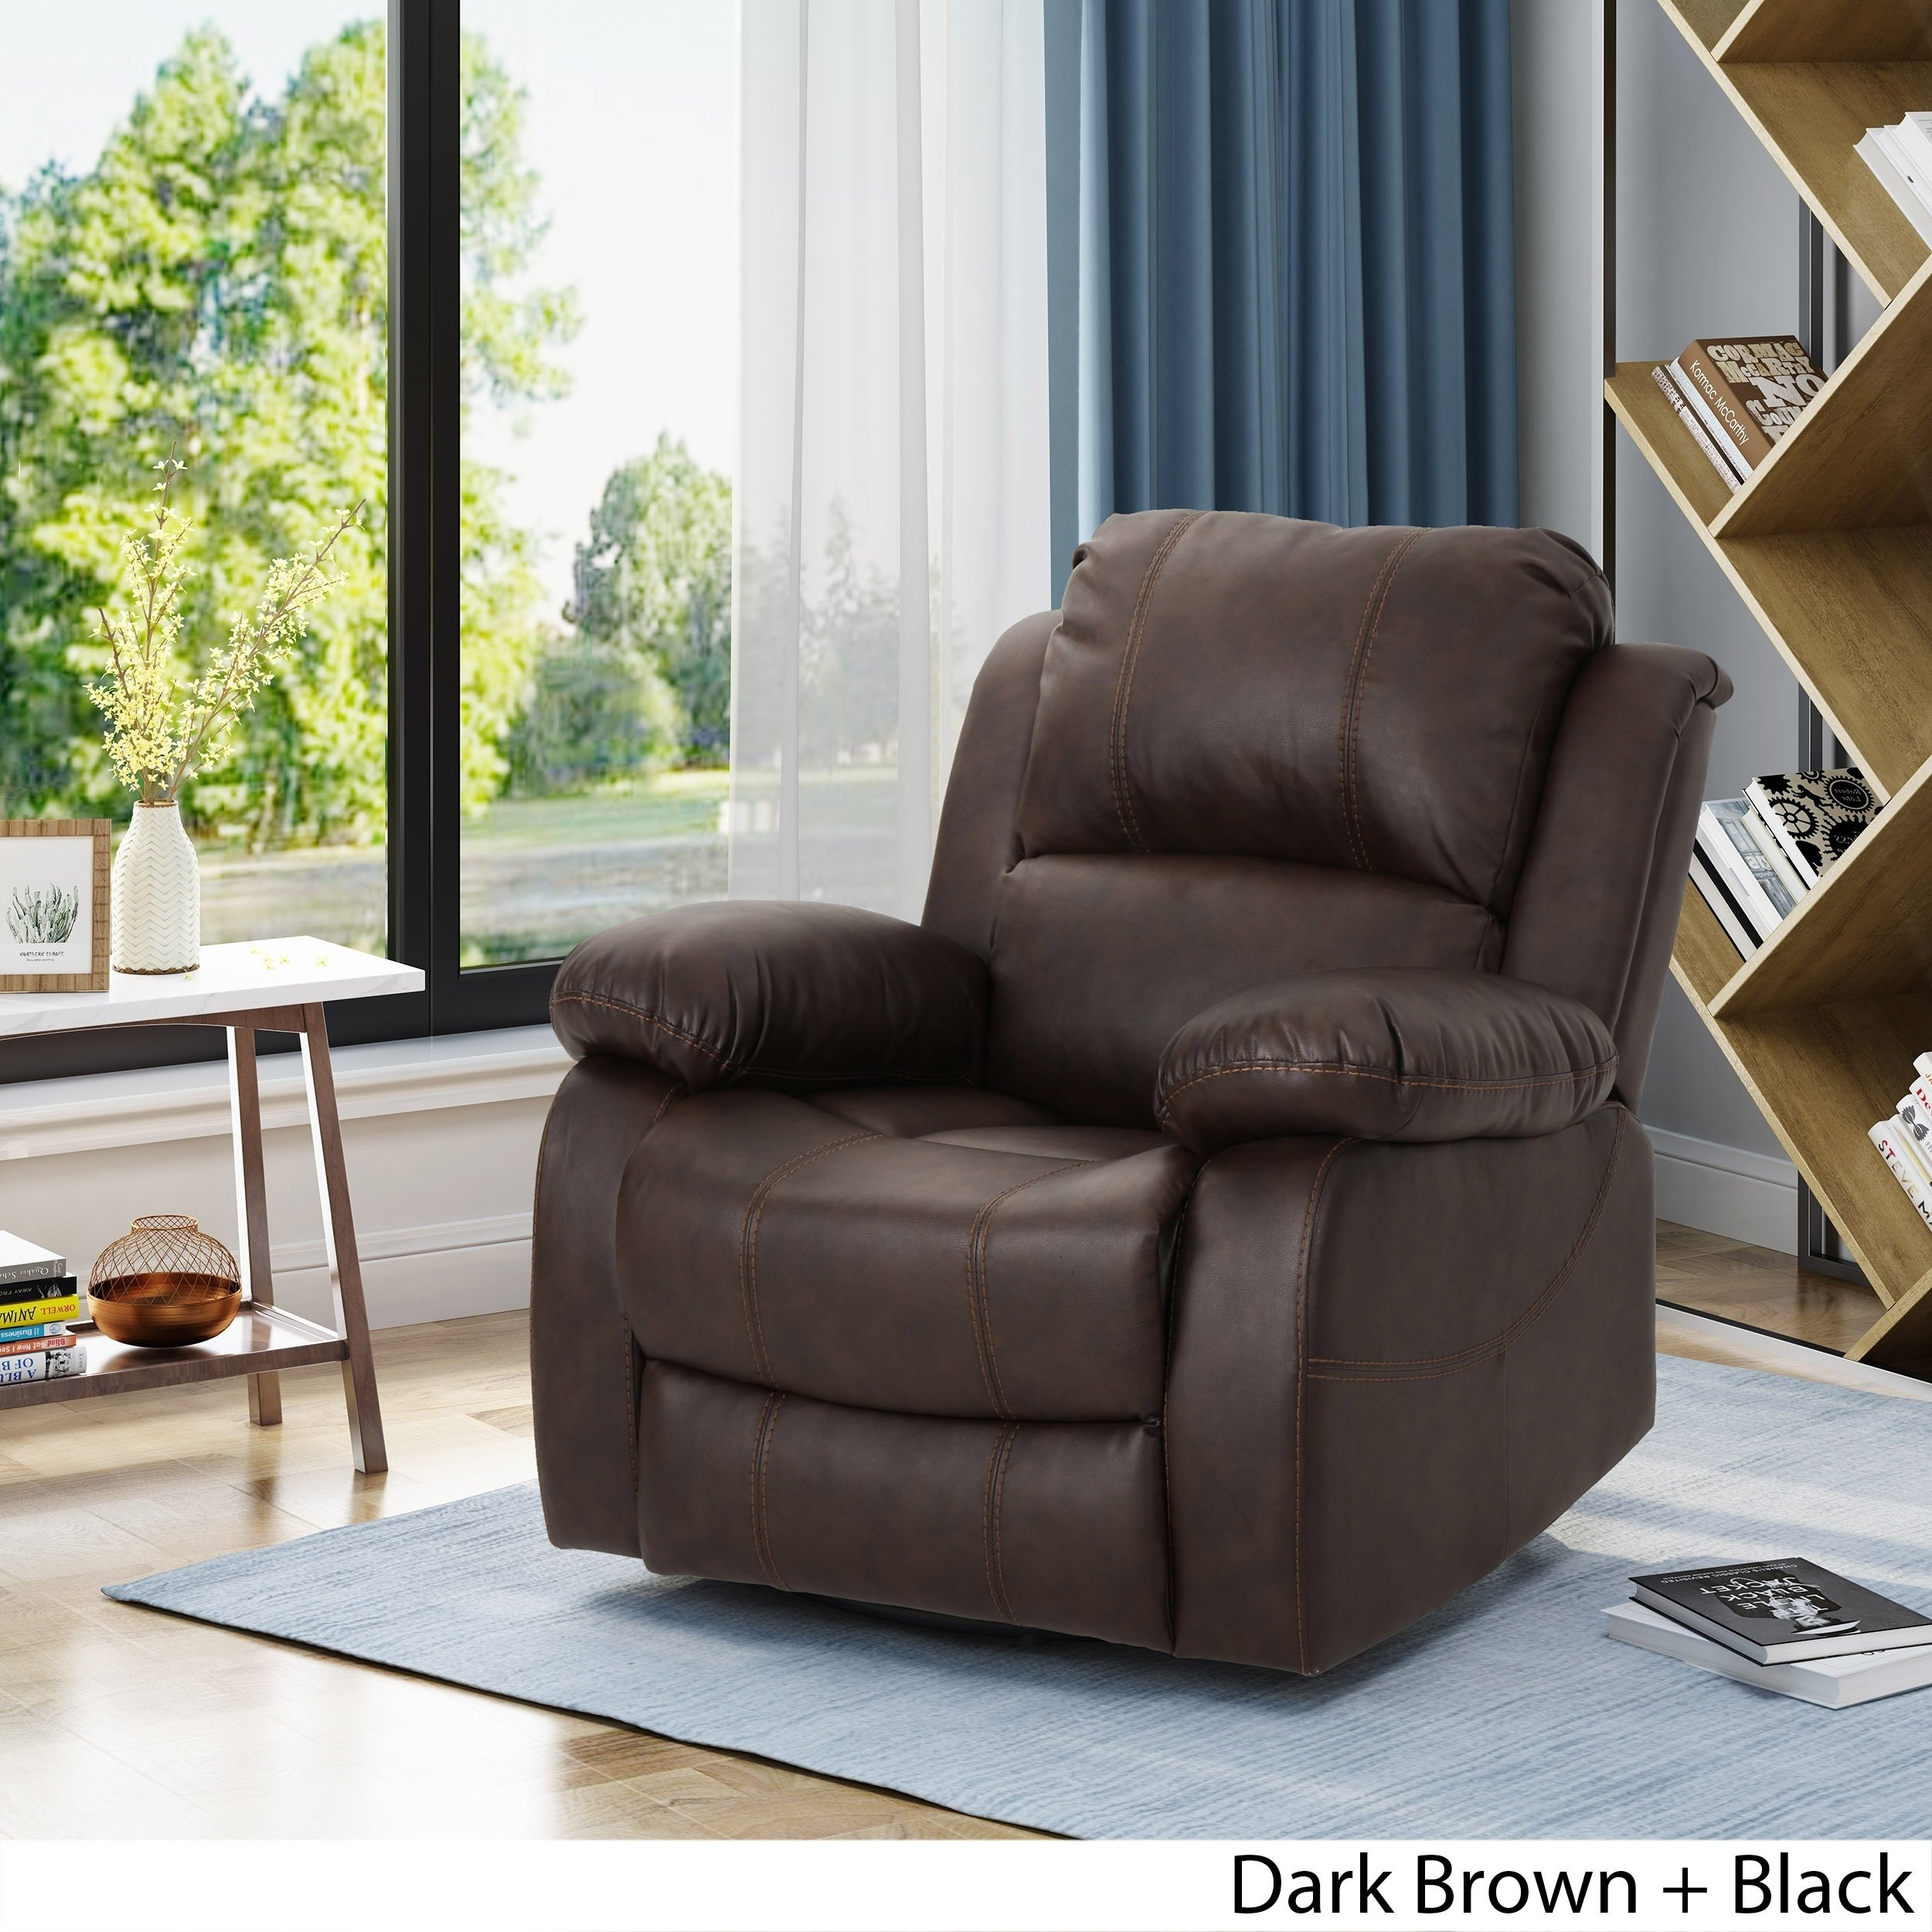 Shop Alianna Classic Leather Gliding Swivel Recliner Club Chair With Regard To Outdoor Koro Swivel Chairs (View 9 of 20)